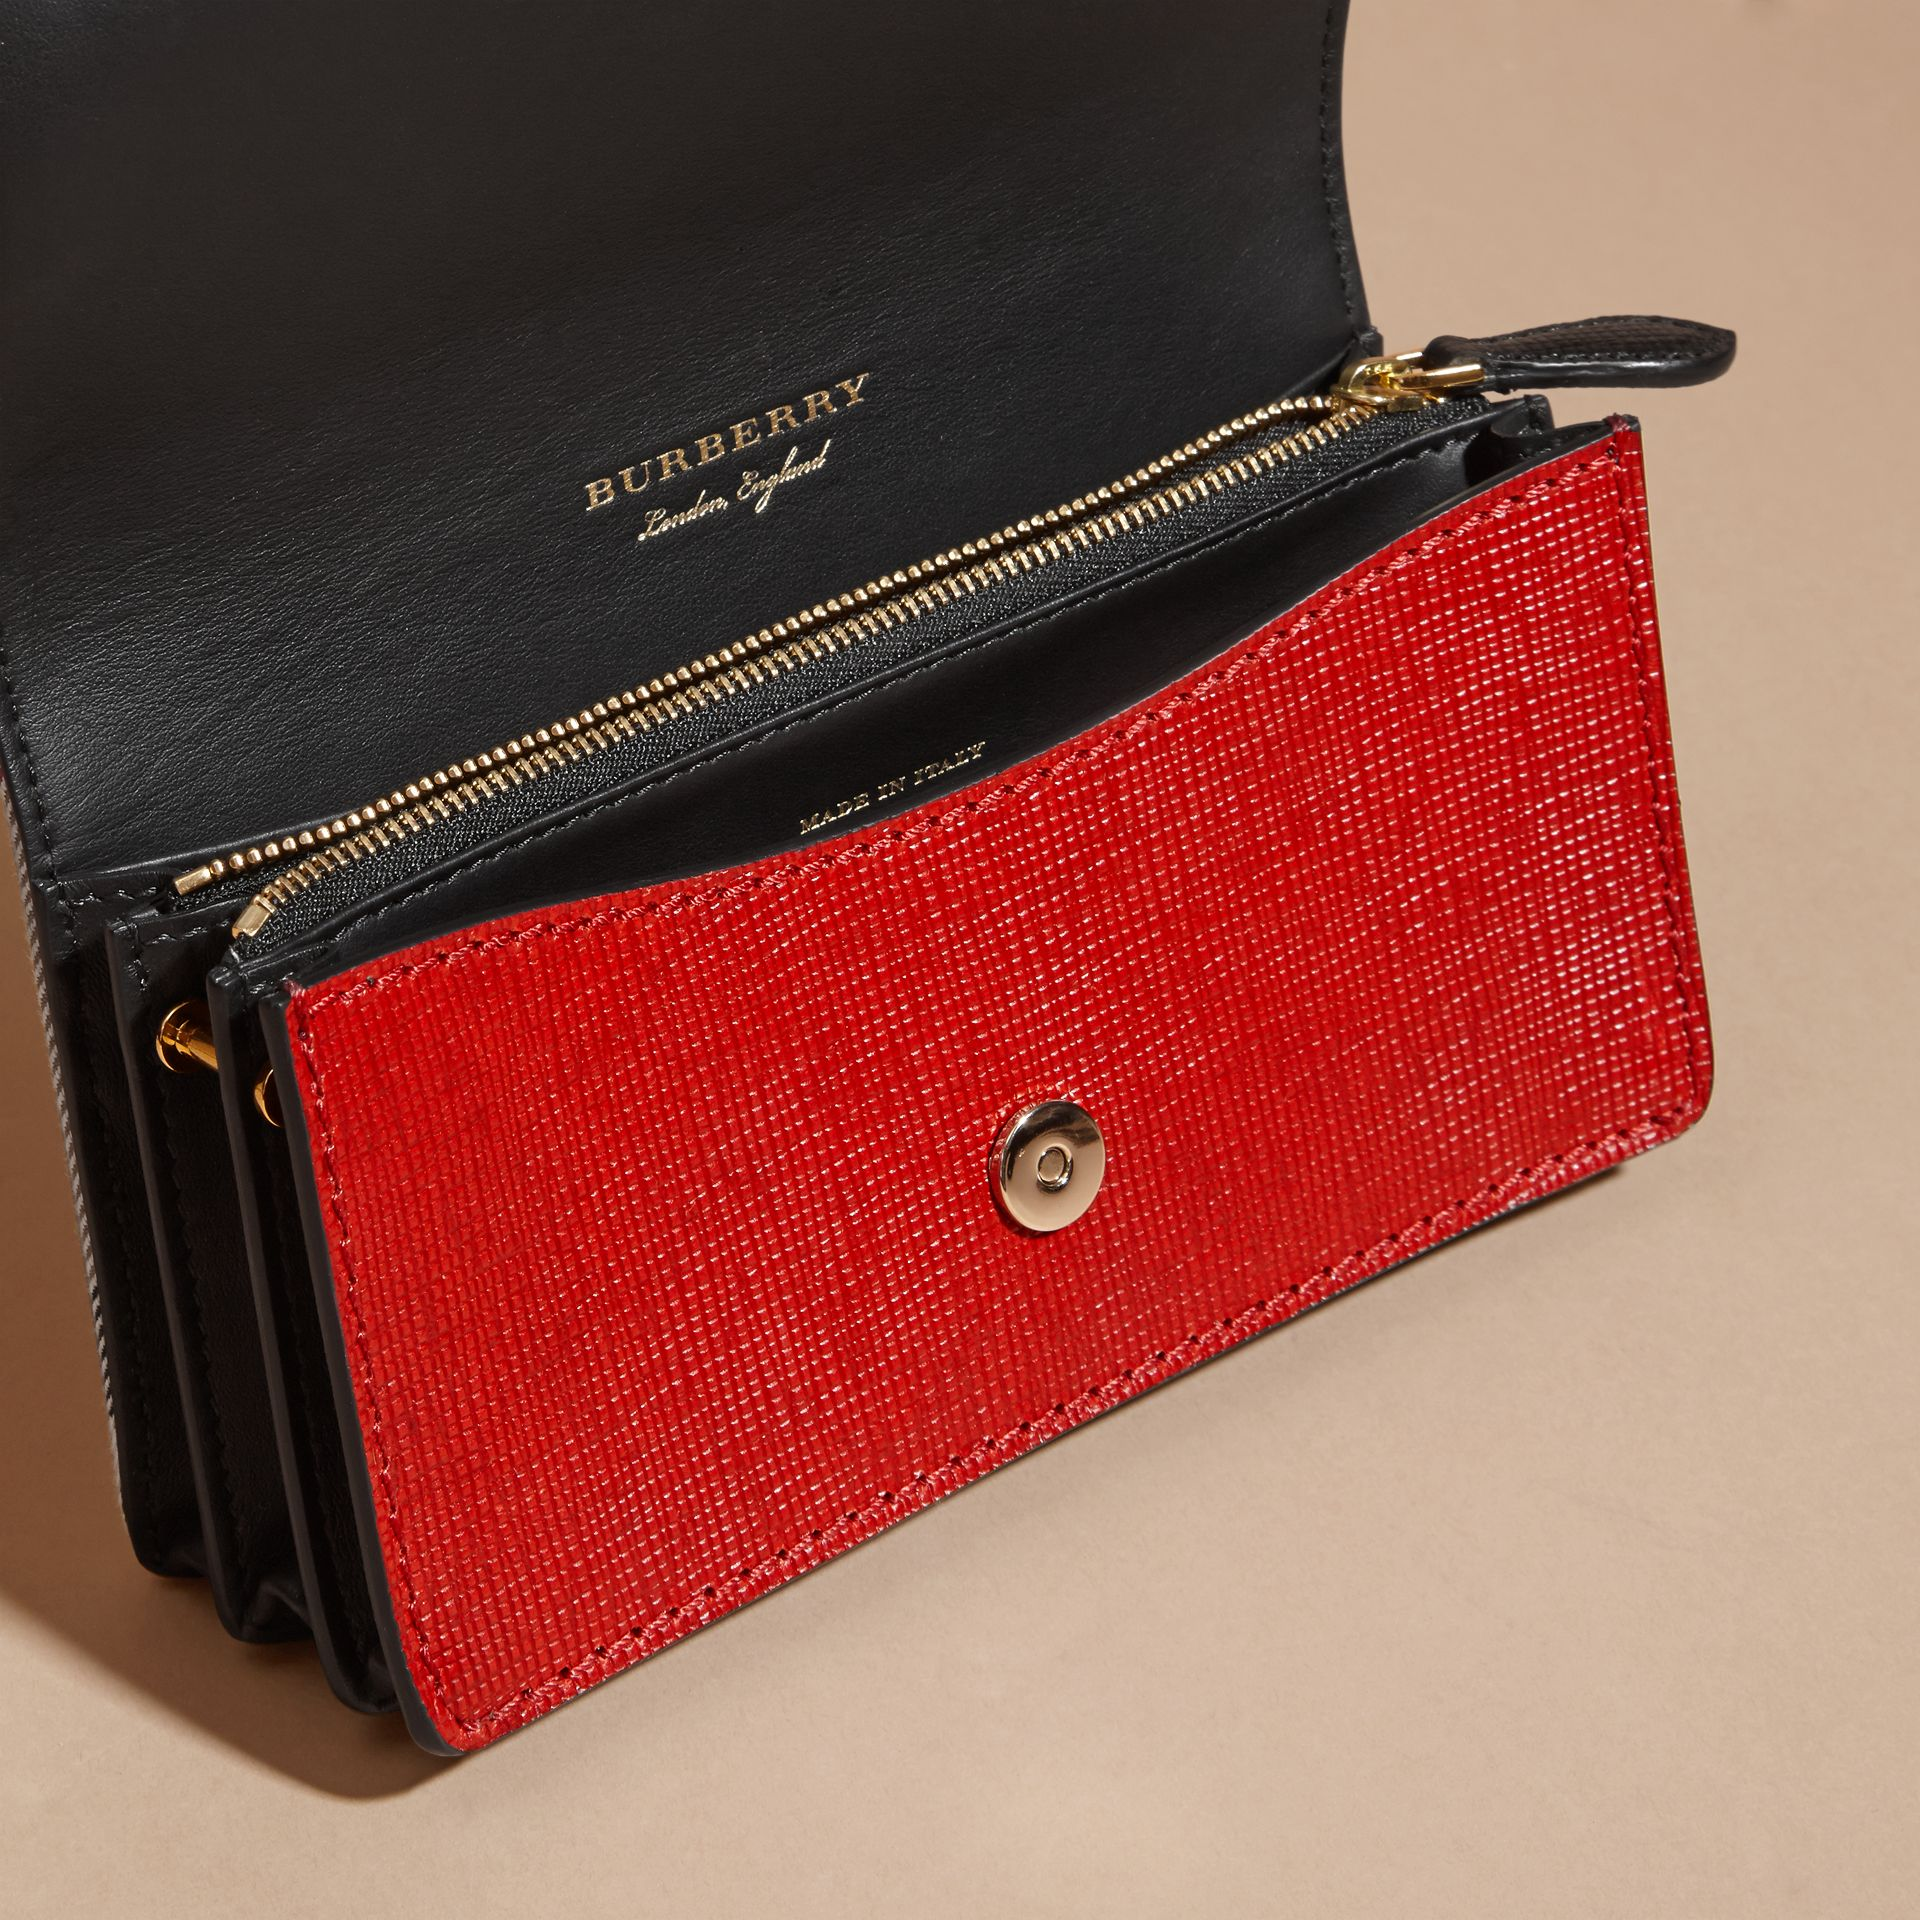 The Small Buckle Bag in House Check and Leather in Military Red/military Red - Women | Burberry United States - gallery image 5